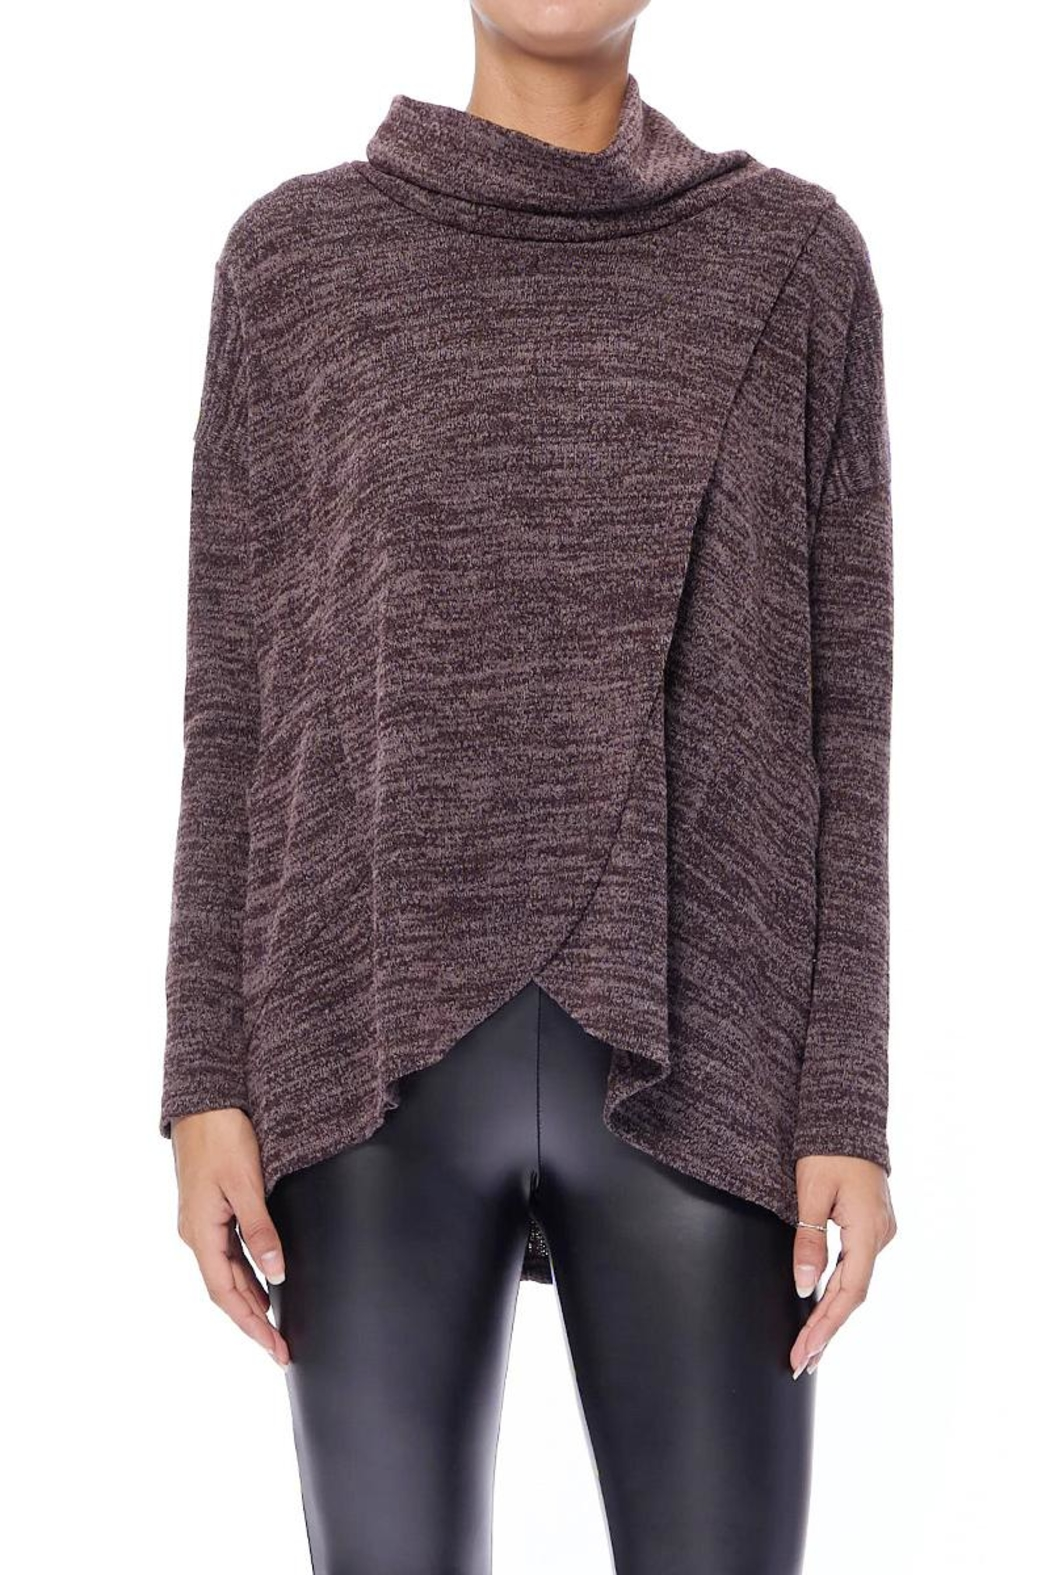 Aryeh Chocolate Cowl Neck Top - Front Cropped Image